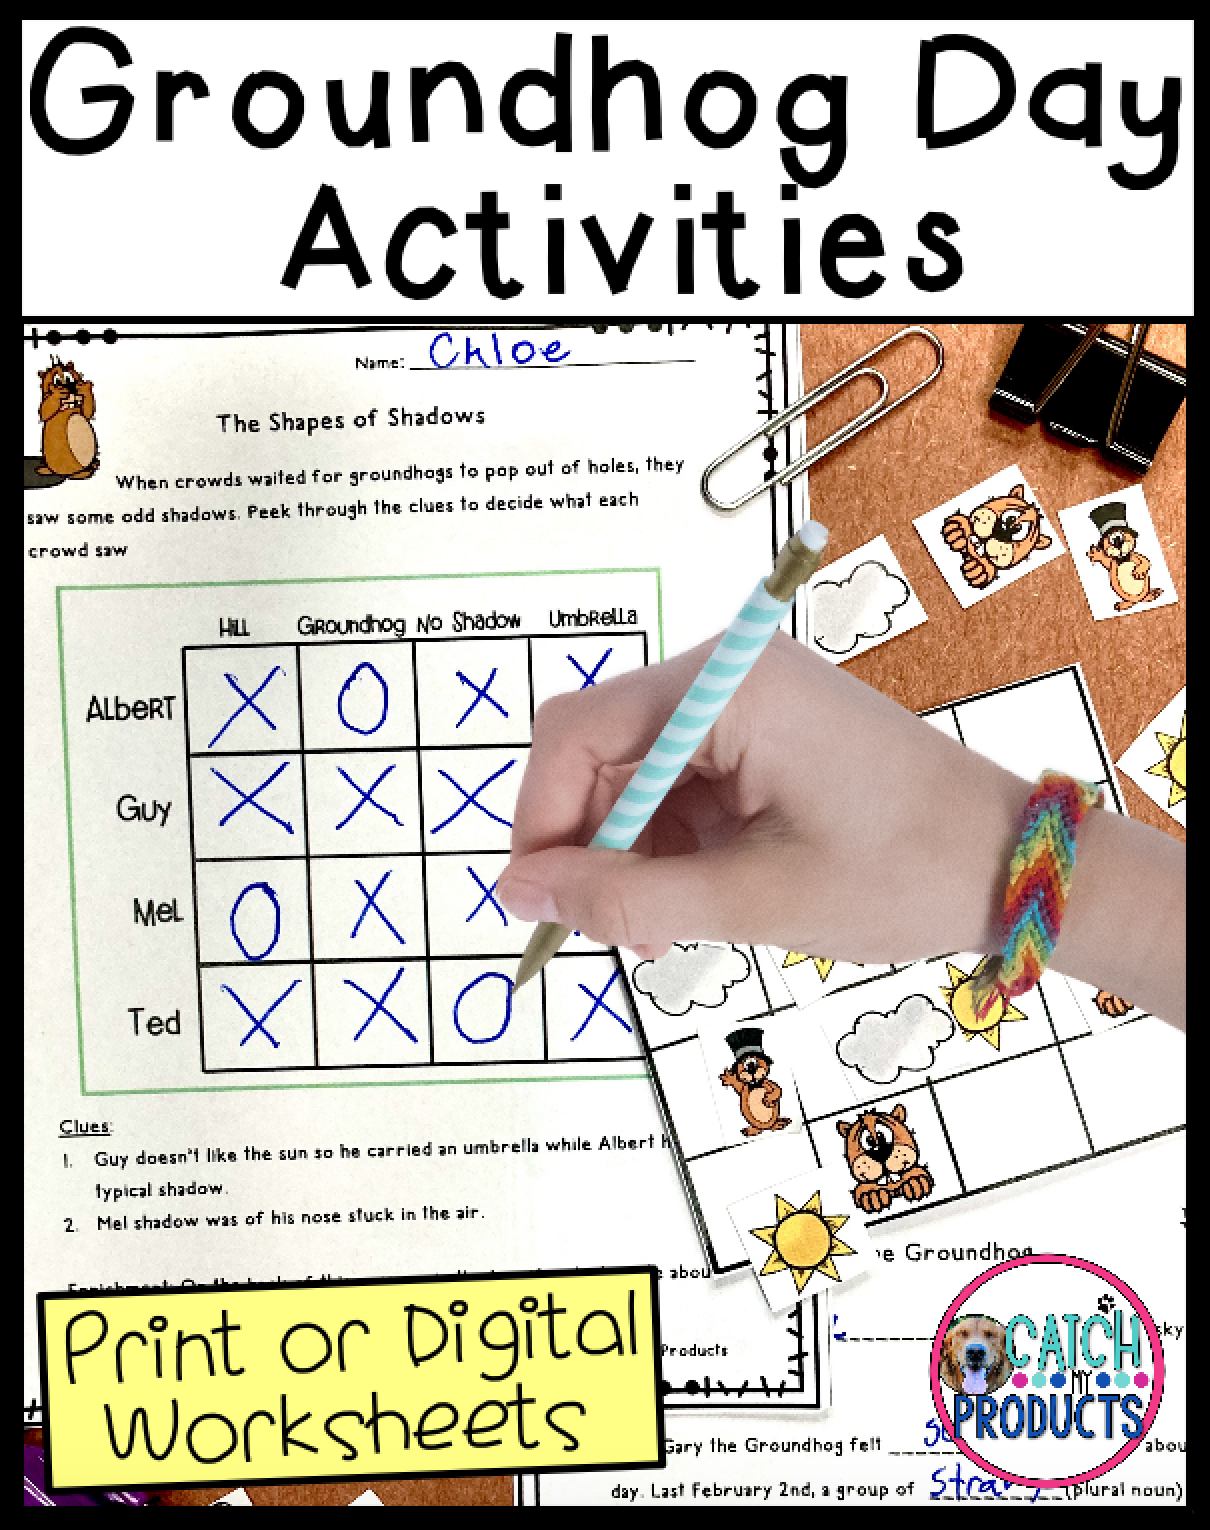 Groundhog Day Writing Math And Logic Puzzle Worksheets In 2021 Groundhog Day Activities Problem Solving Activities Critical Thinking Activities [ 1530 x 1210 Pixel ]